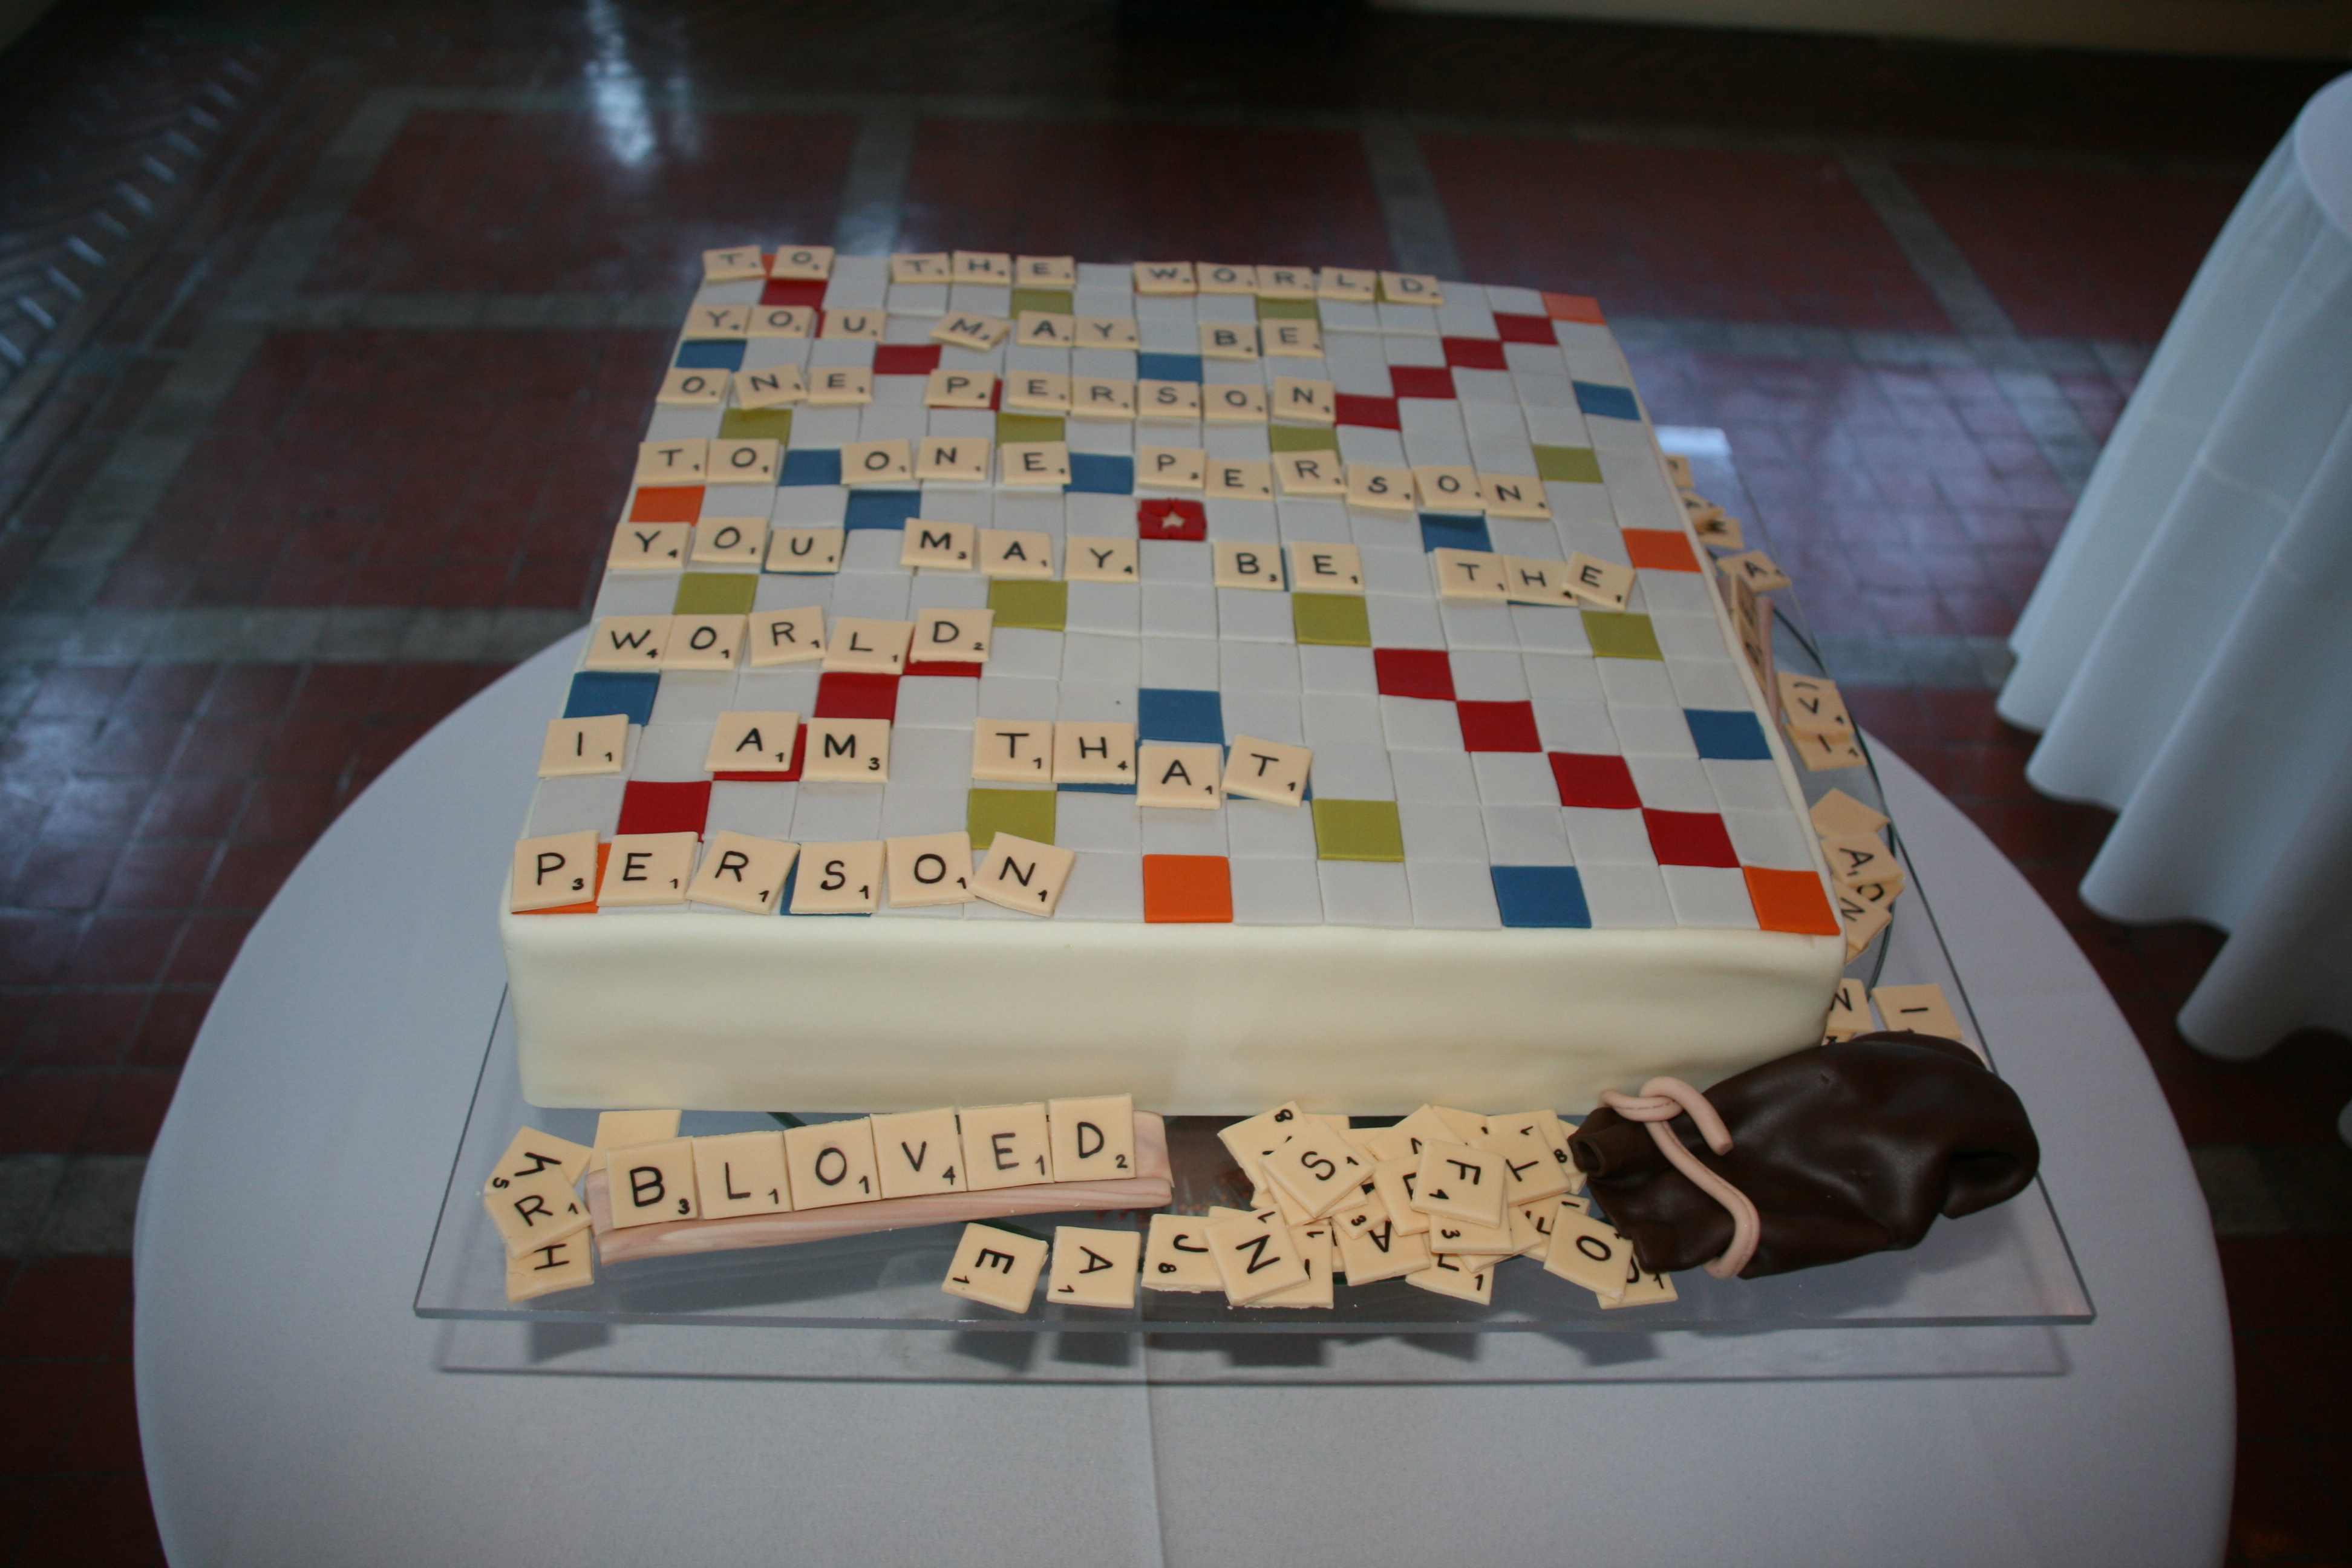 The fabulous custom made grooms cake by Studio Cake in Menlo Park. Christina had the cake made in the image of the portable board game that Burt proposed with!